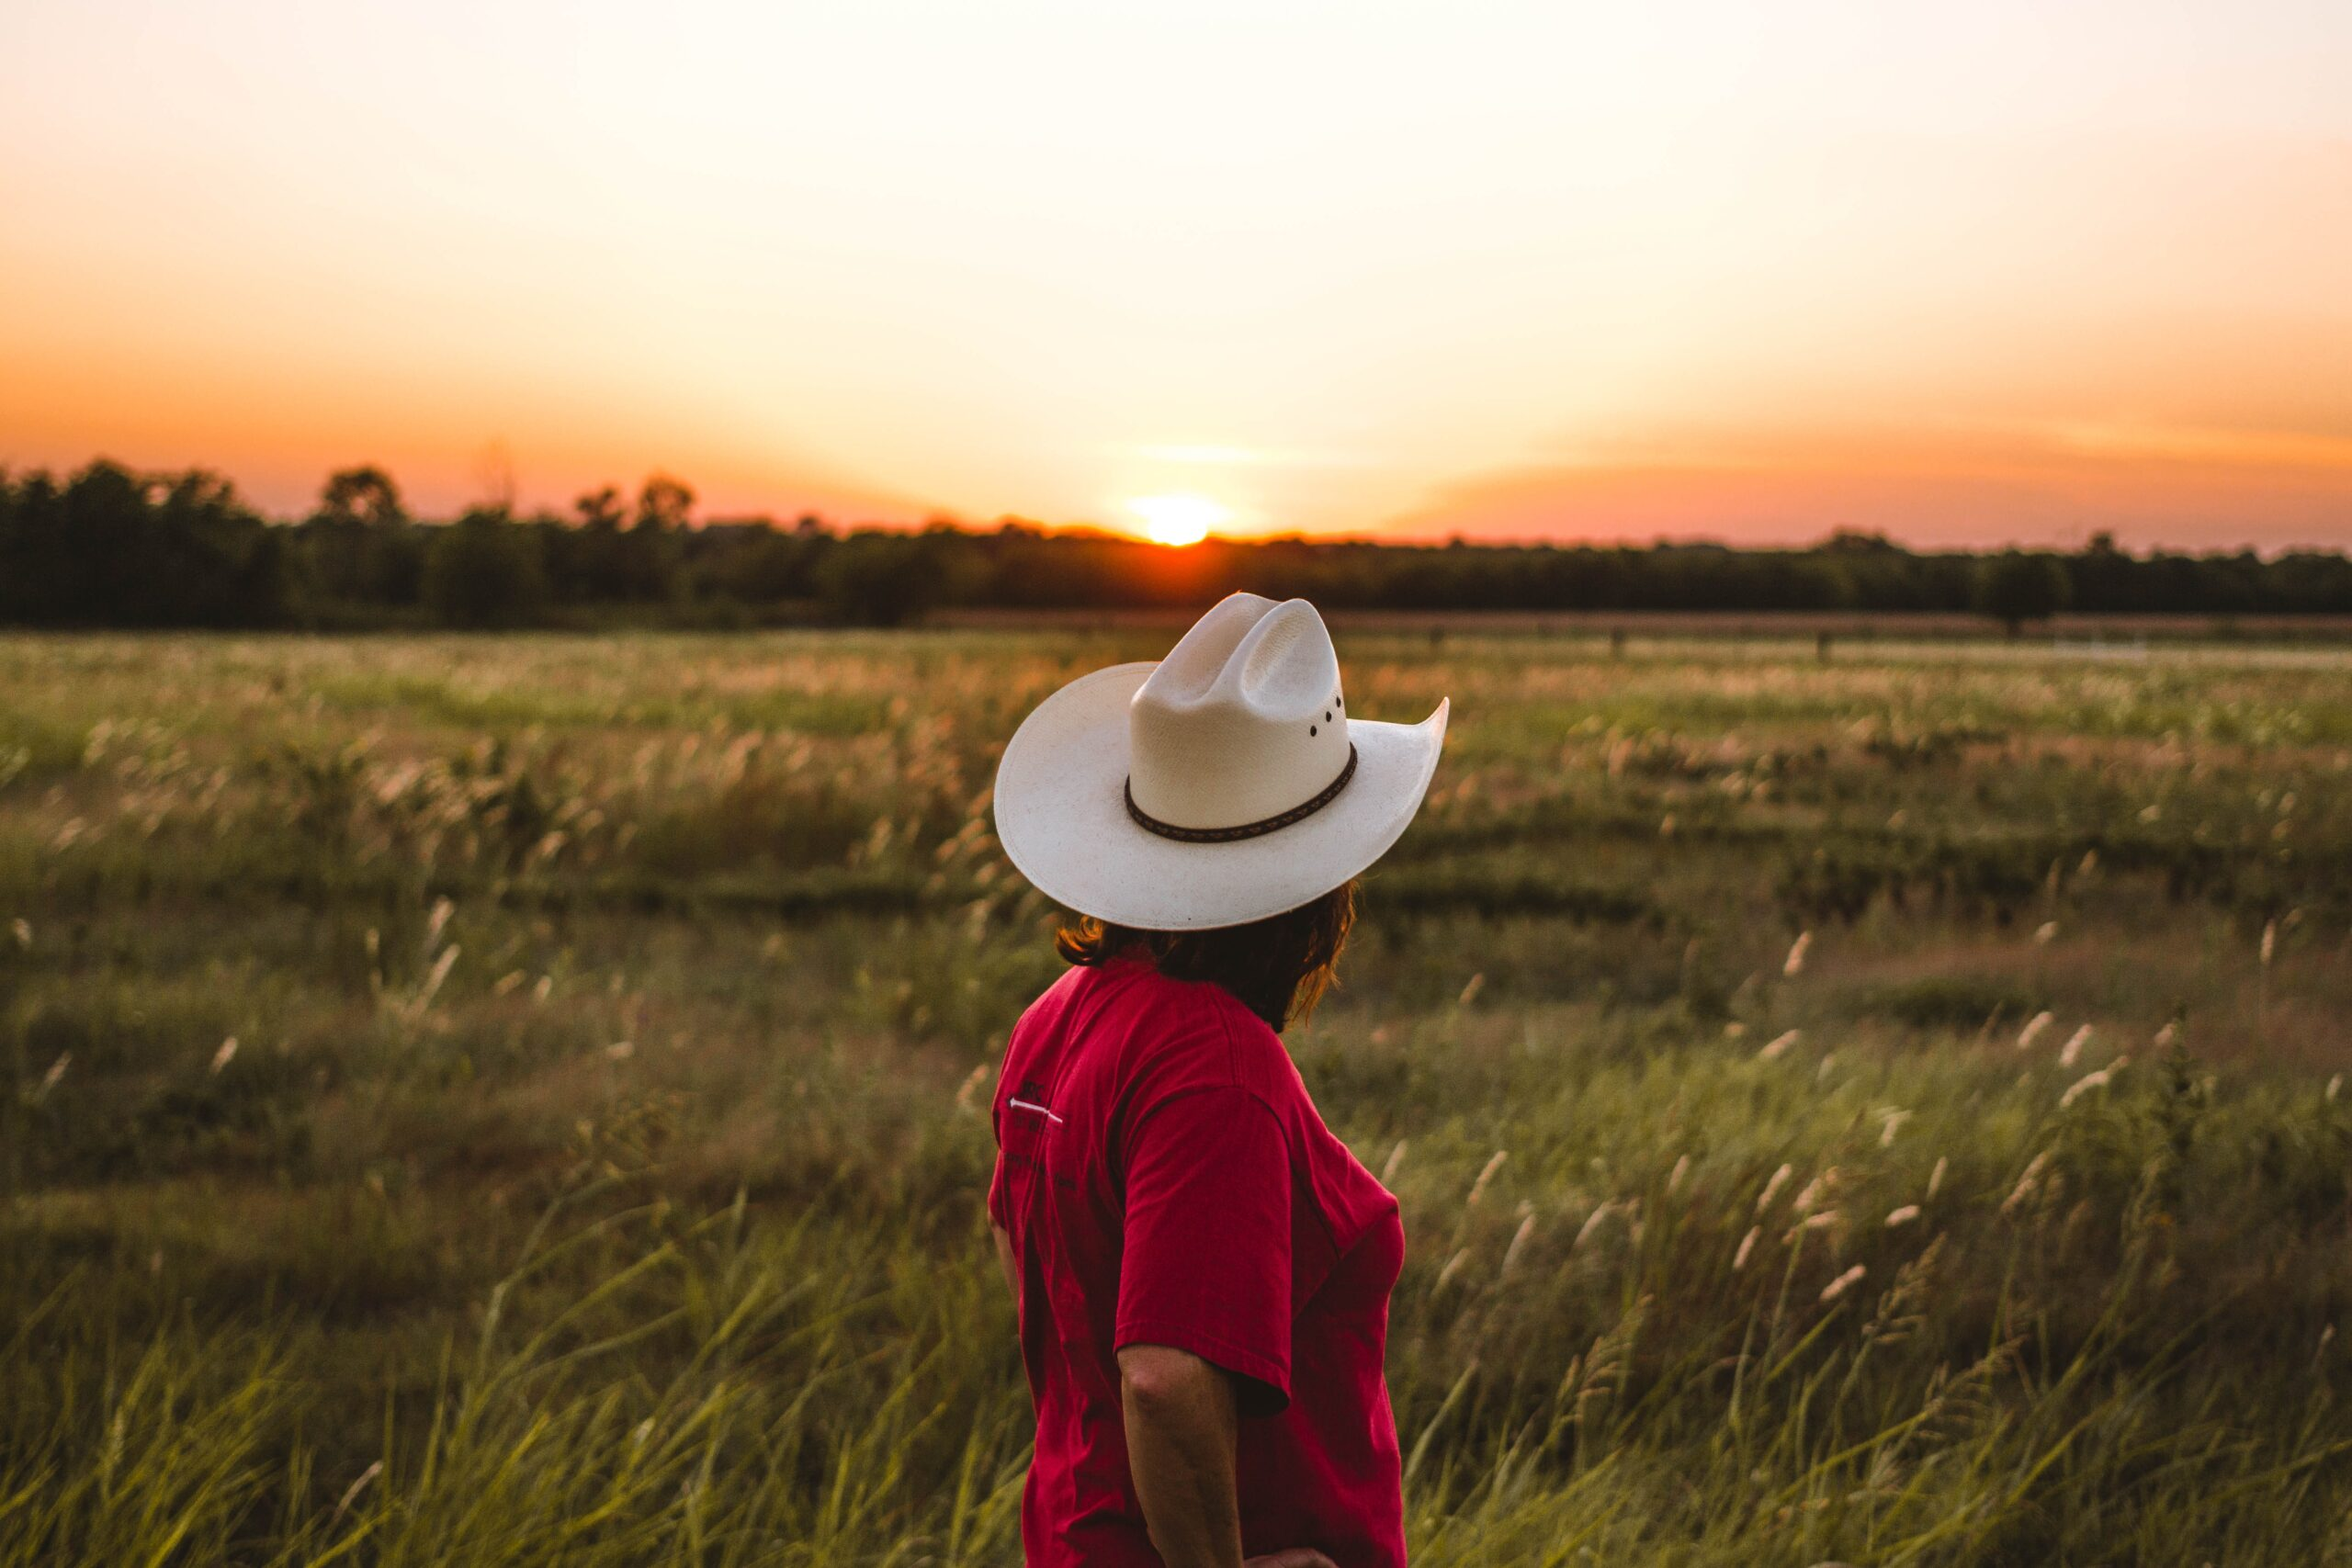 justin-clark-cowgirl looking out over prarie sunset-unsplash